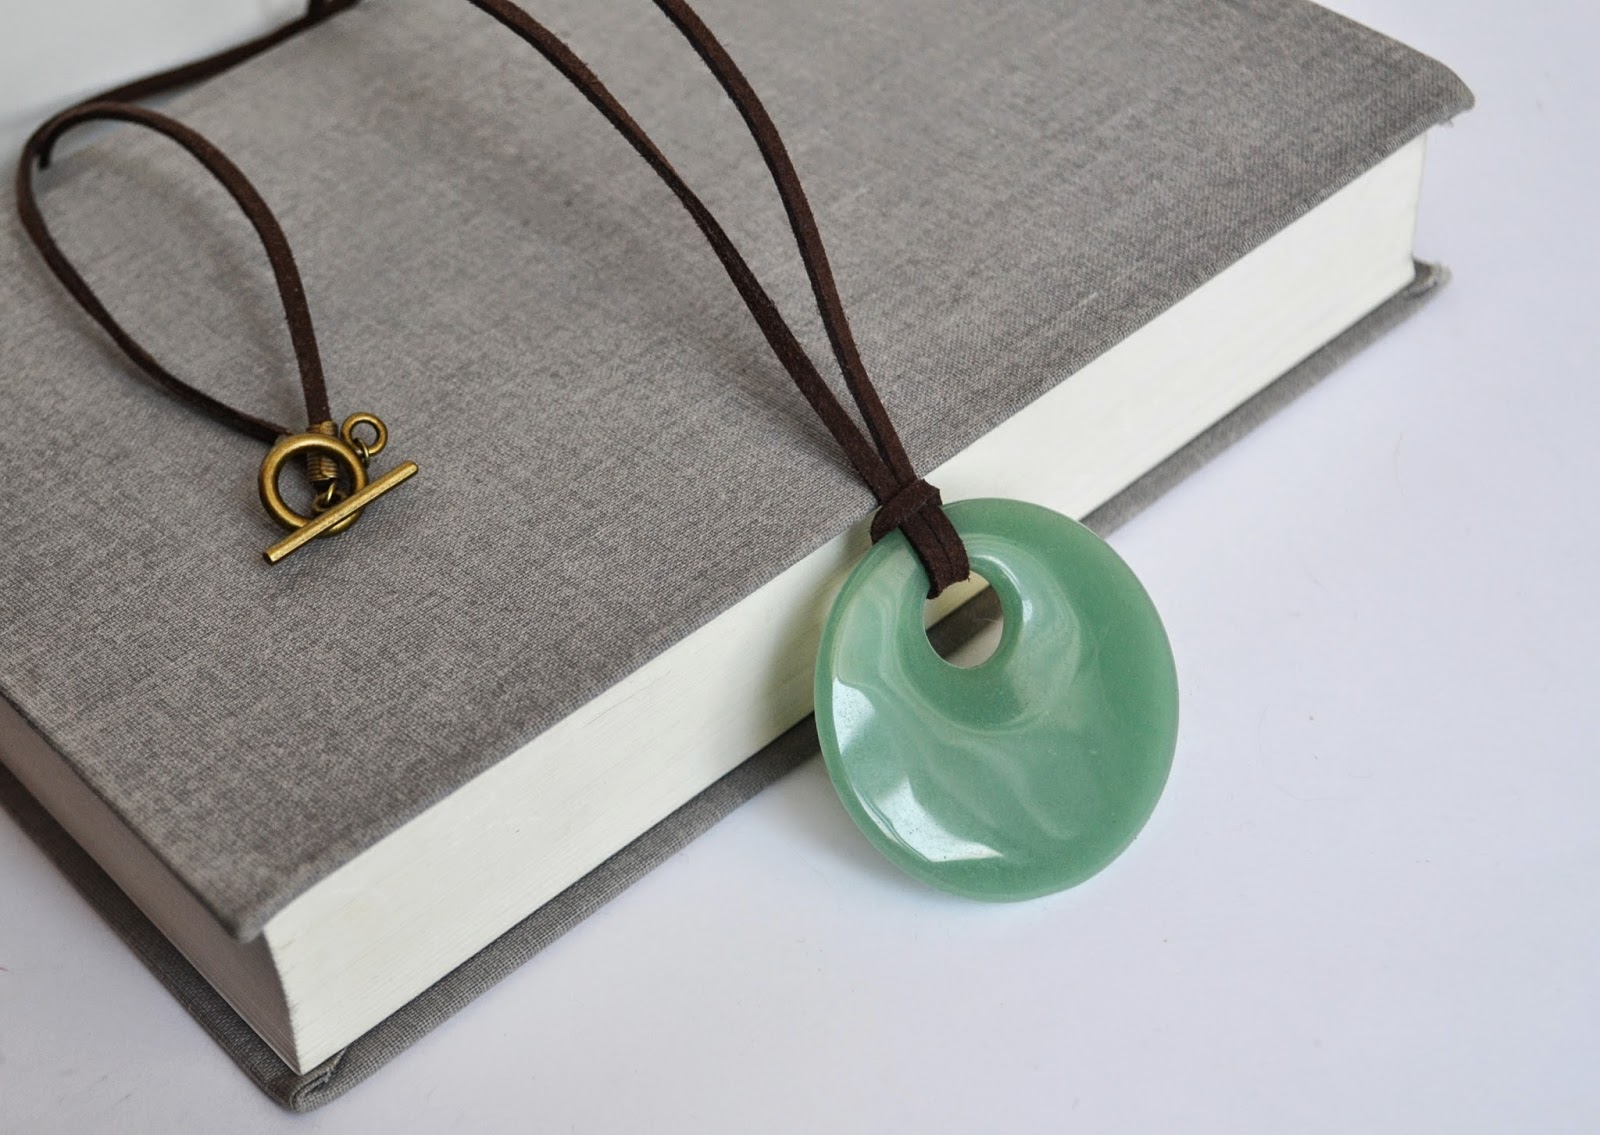 https://www.etsy.com/listing/100504113/long-jade-necklace-bohemian-style?ref=shop_home_active_5